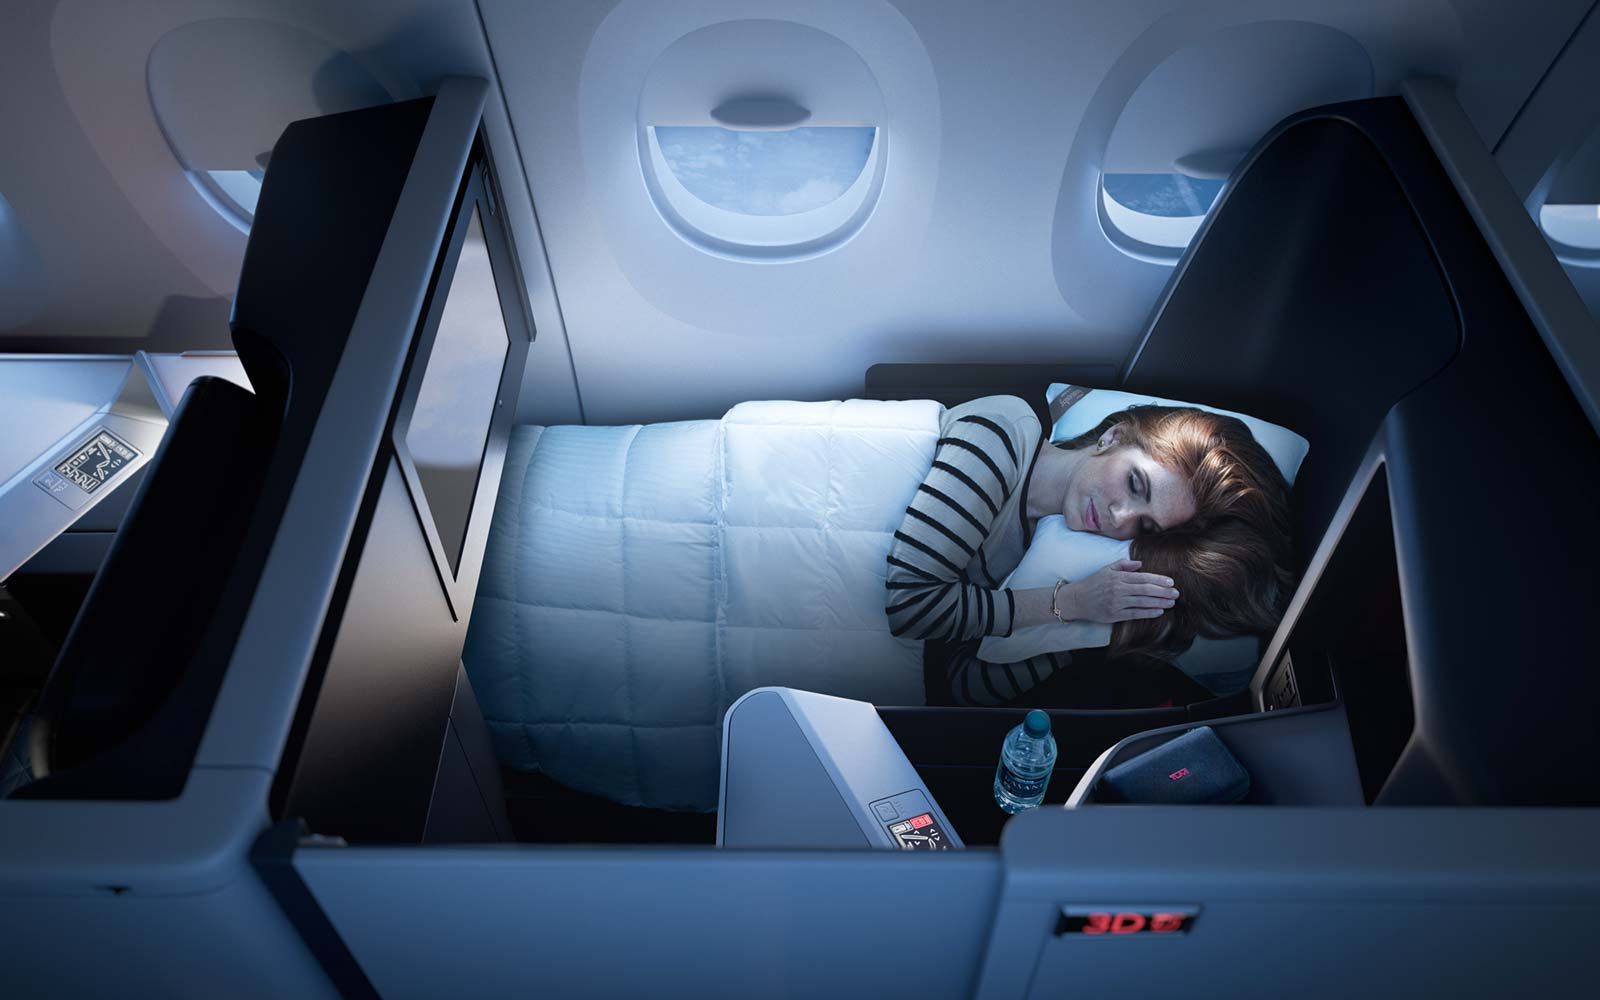 Delta Airlines Airbus A350 Delta One suite, the first business class cabin to feature a sliding door at each suite